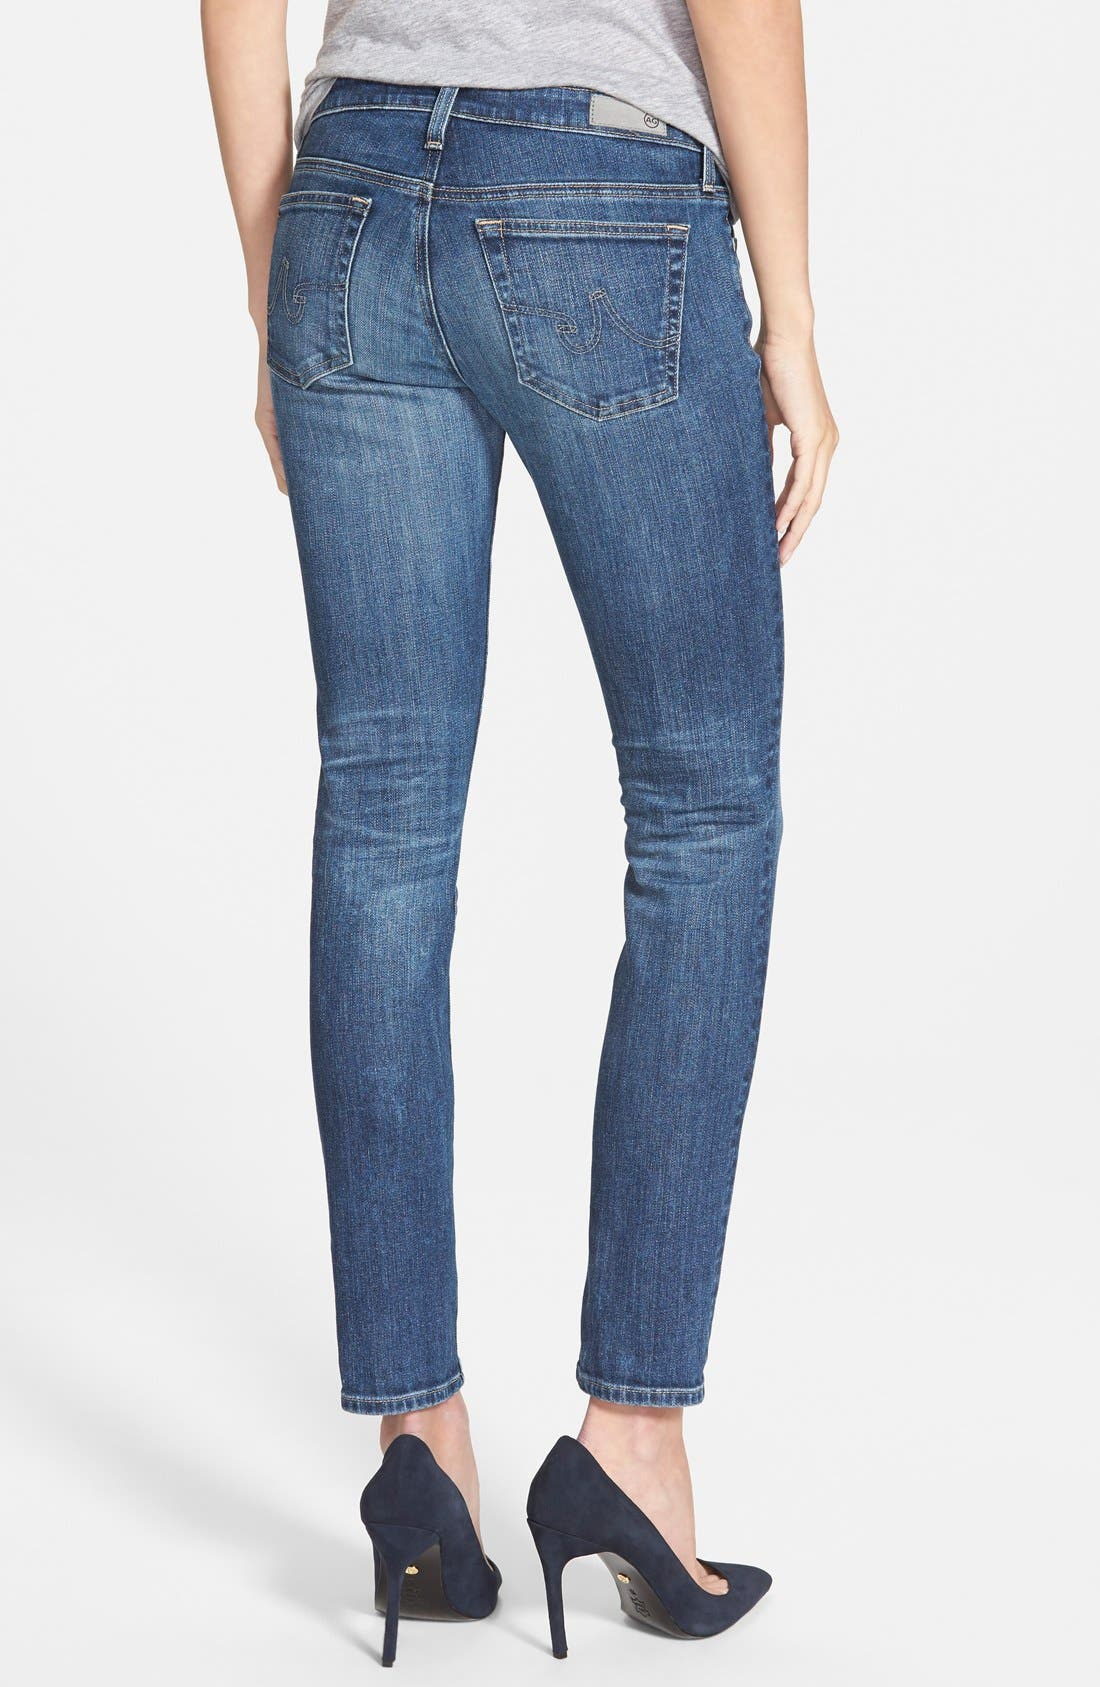 Alternate Image 3  - AG 'The Stilt' Cigarette Leg Jeans (Four Year Dreamer) (Nordstrom Exclusive)